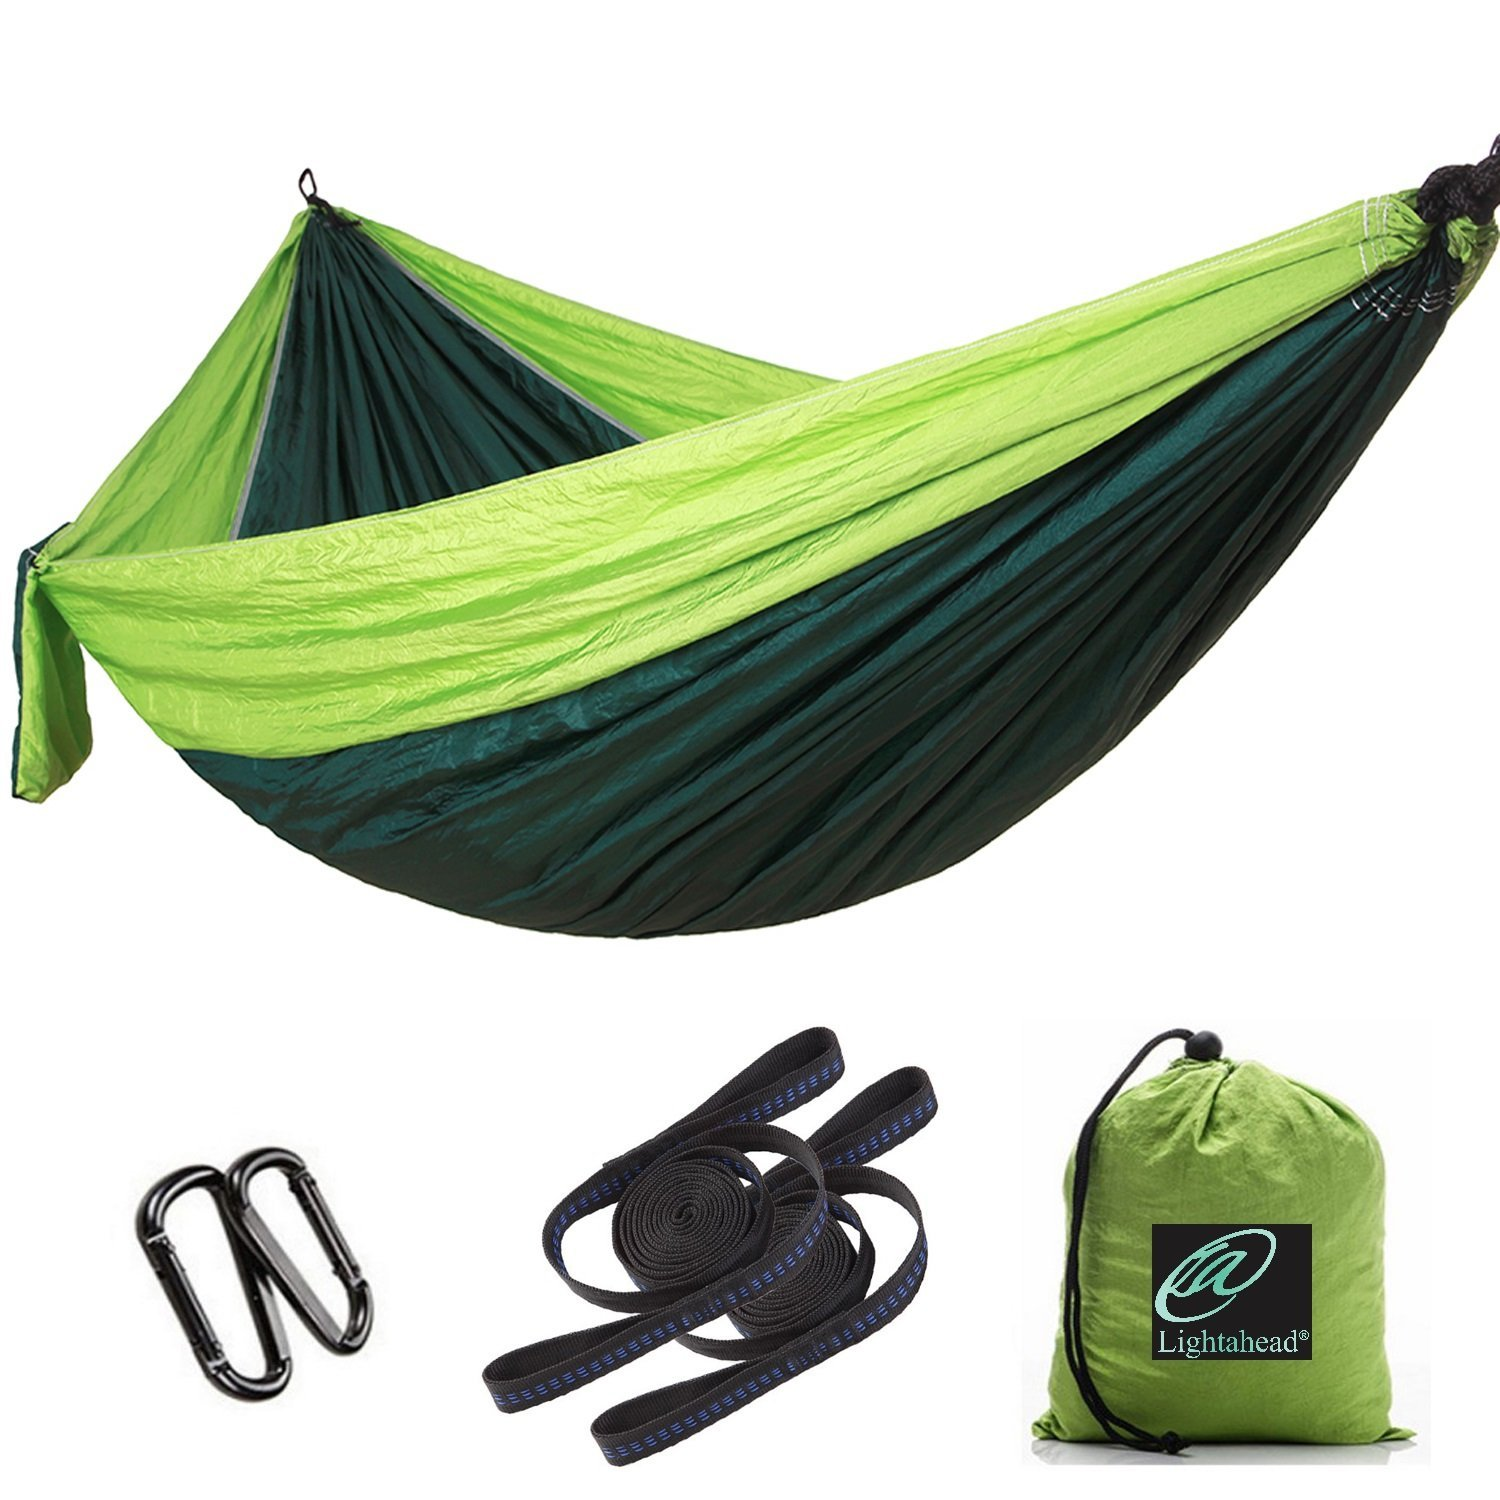 Elegantoss Camping Hammock Single Parachute Portable Including 2 Straps with Loops & Carbines– Heavy Duty Lightweight Nylon,Best Parachute Hammock For Camping,Travel, Beach(Dark Green/Fruit Green)